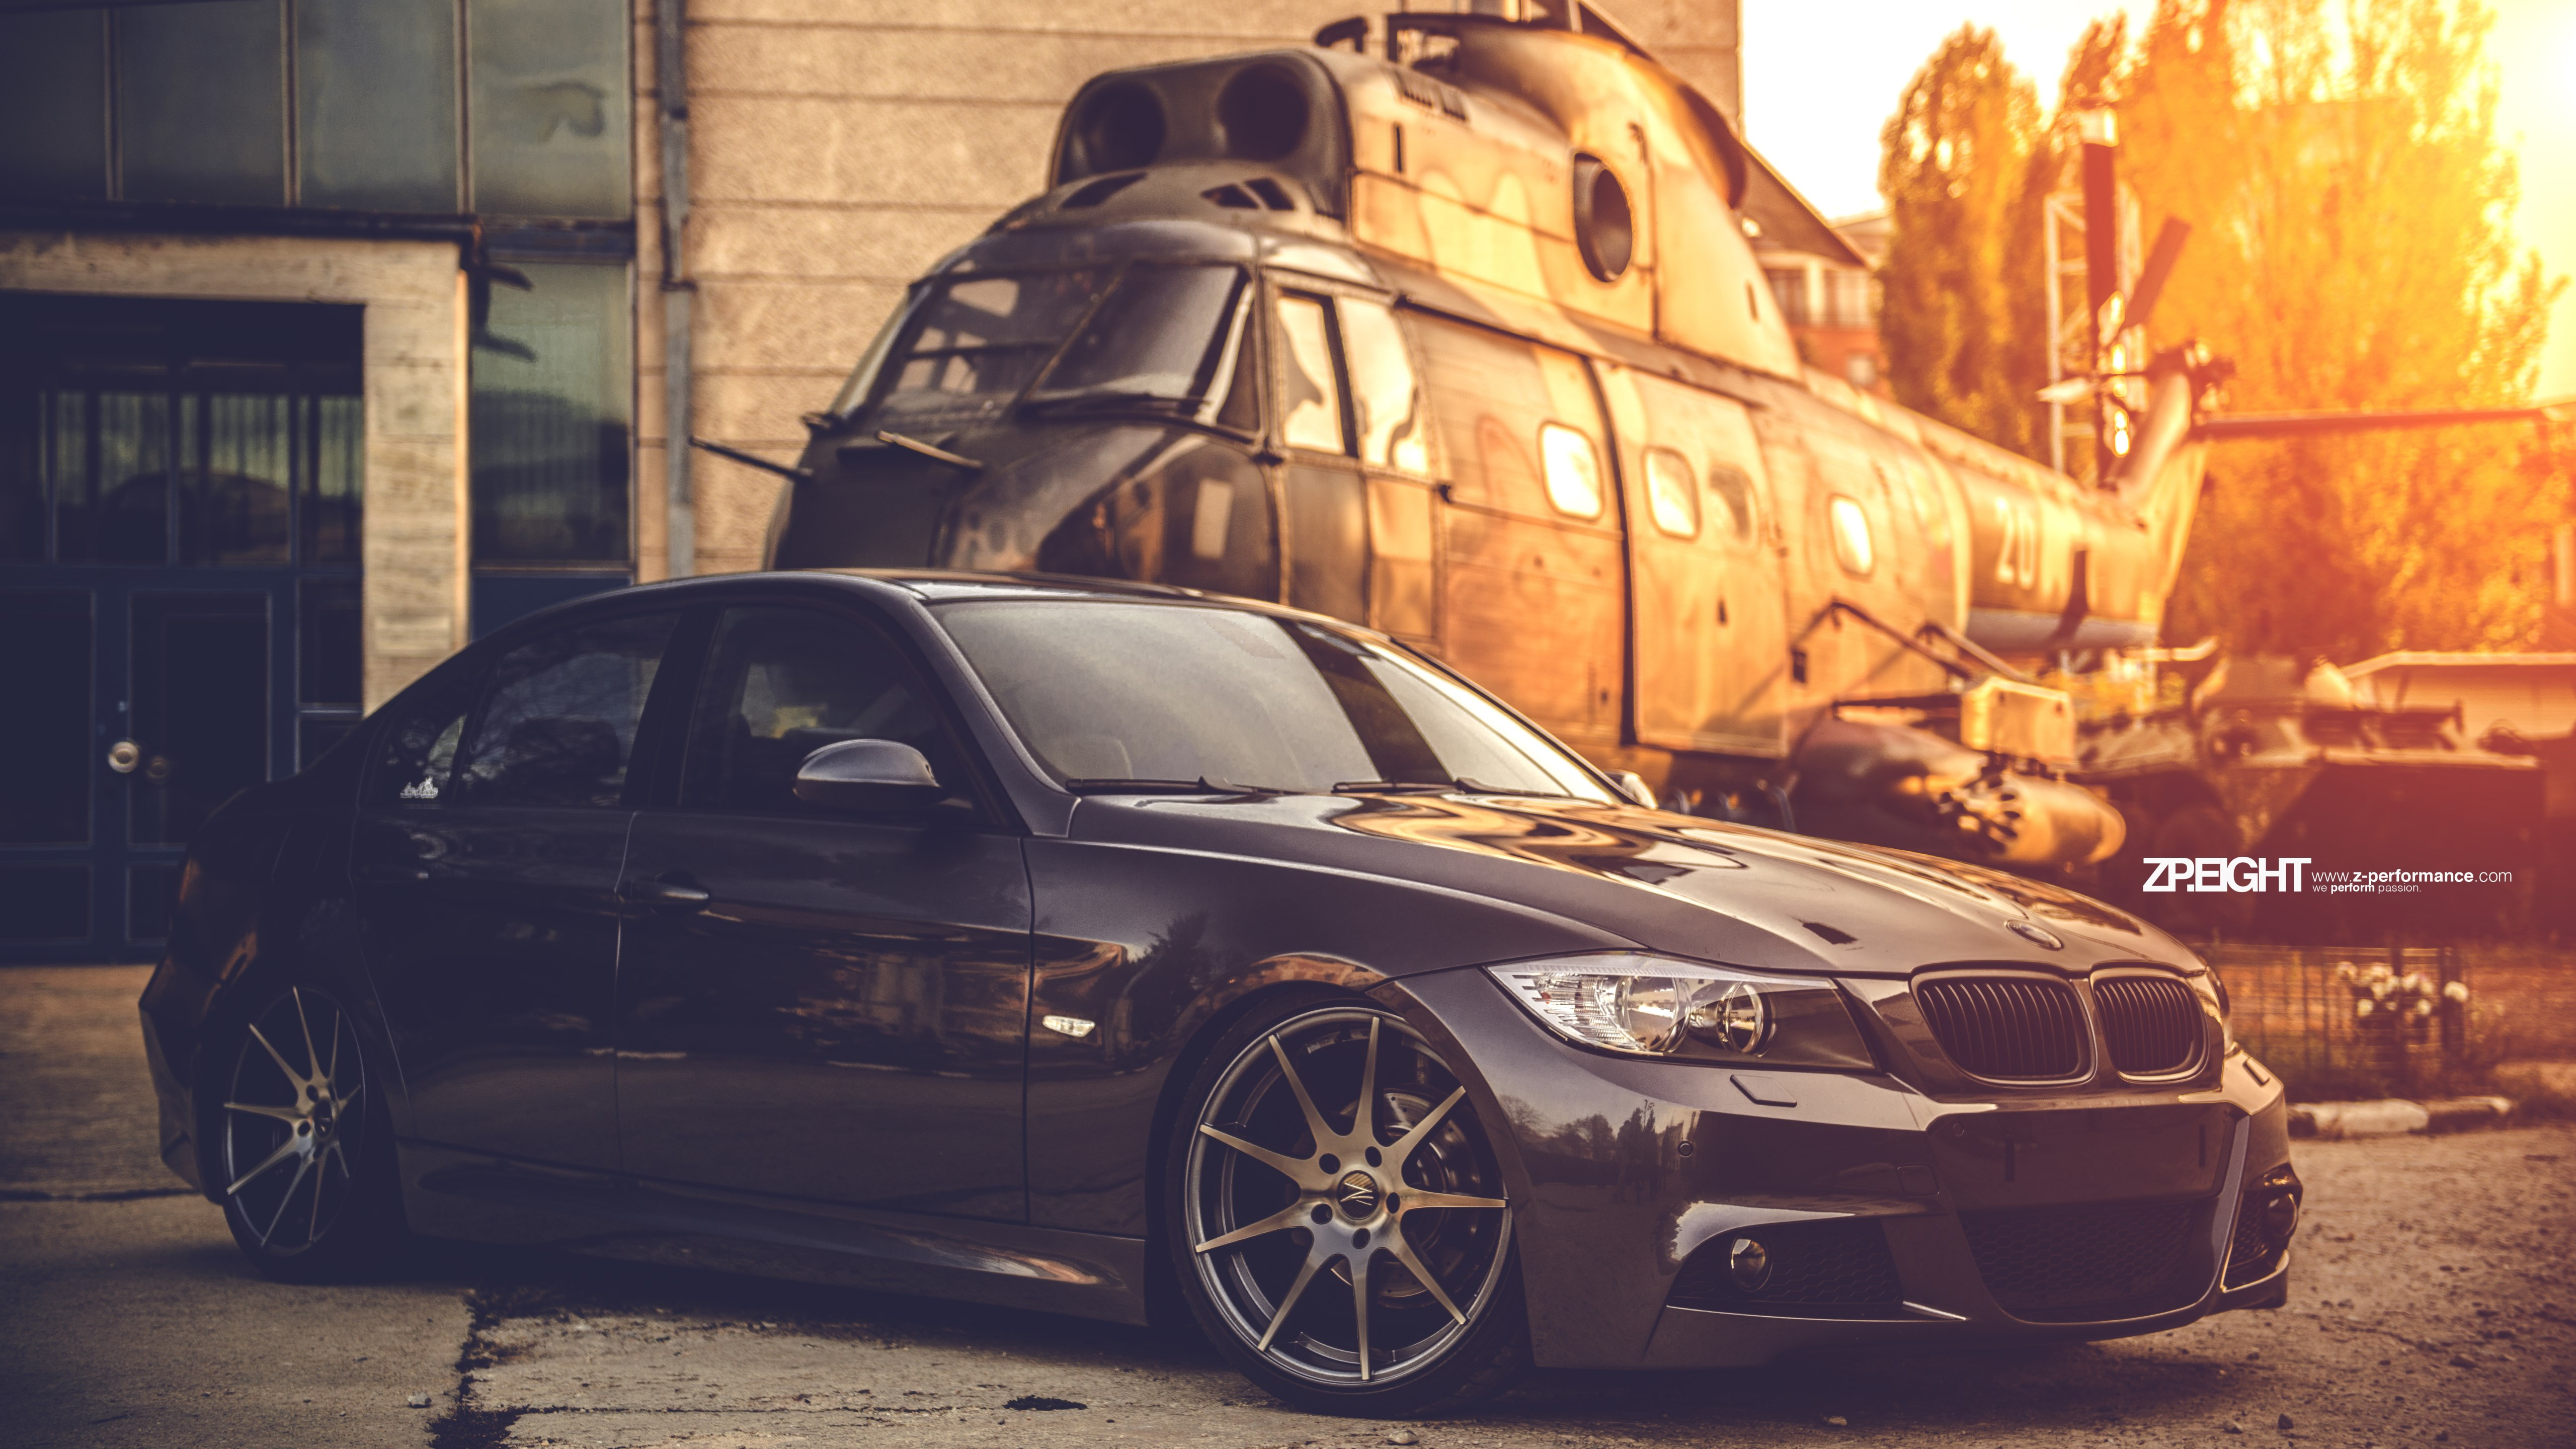 BMW E90 and one helicopter wallpaper 5120x2880